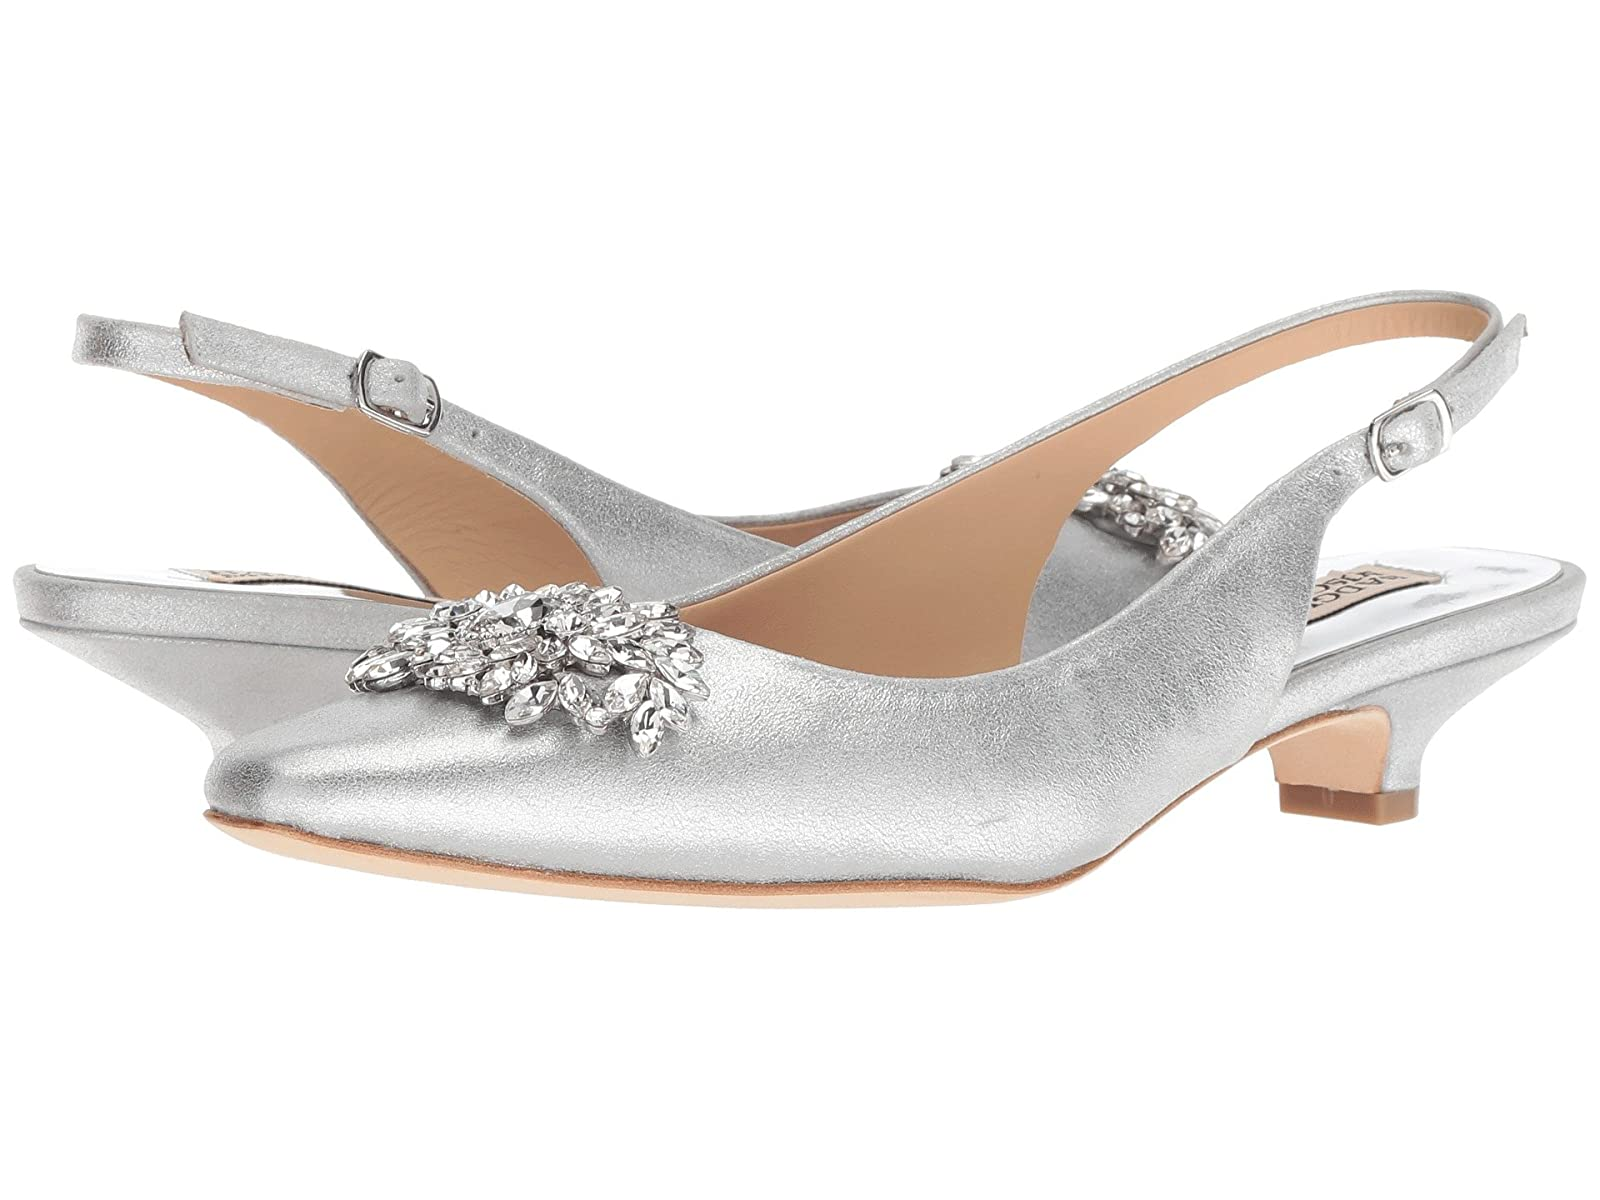 Badgley Mischka Page IIAtmospheric grades have affordable shoes